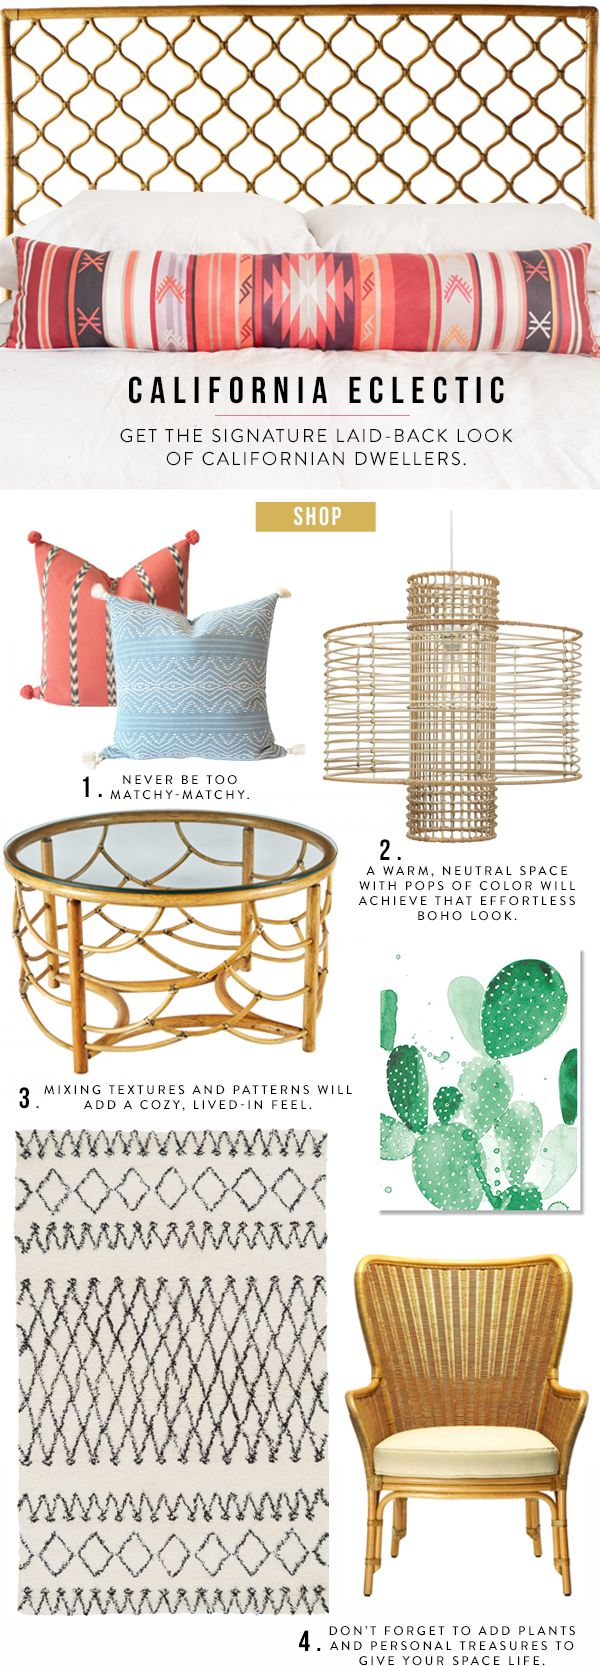 This is so me <3 Get the Look: California Eclectic Tips: 1. Never be too matchy-matchy. 2. A warm, neutral space with pops of color with achieve that effortless boho look. 3. Mixing textures and patterns will add a cozy, lived-in feel. 4. Don't forget to add plants and personal treasures to bring some life to your space!